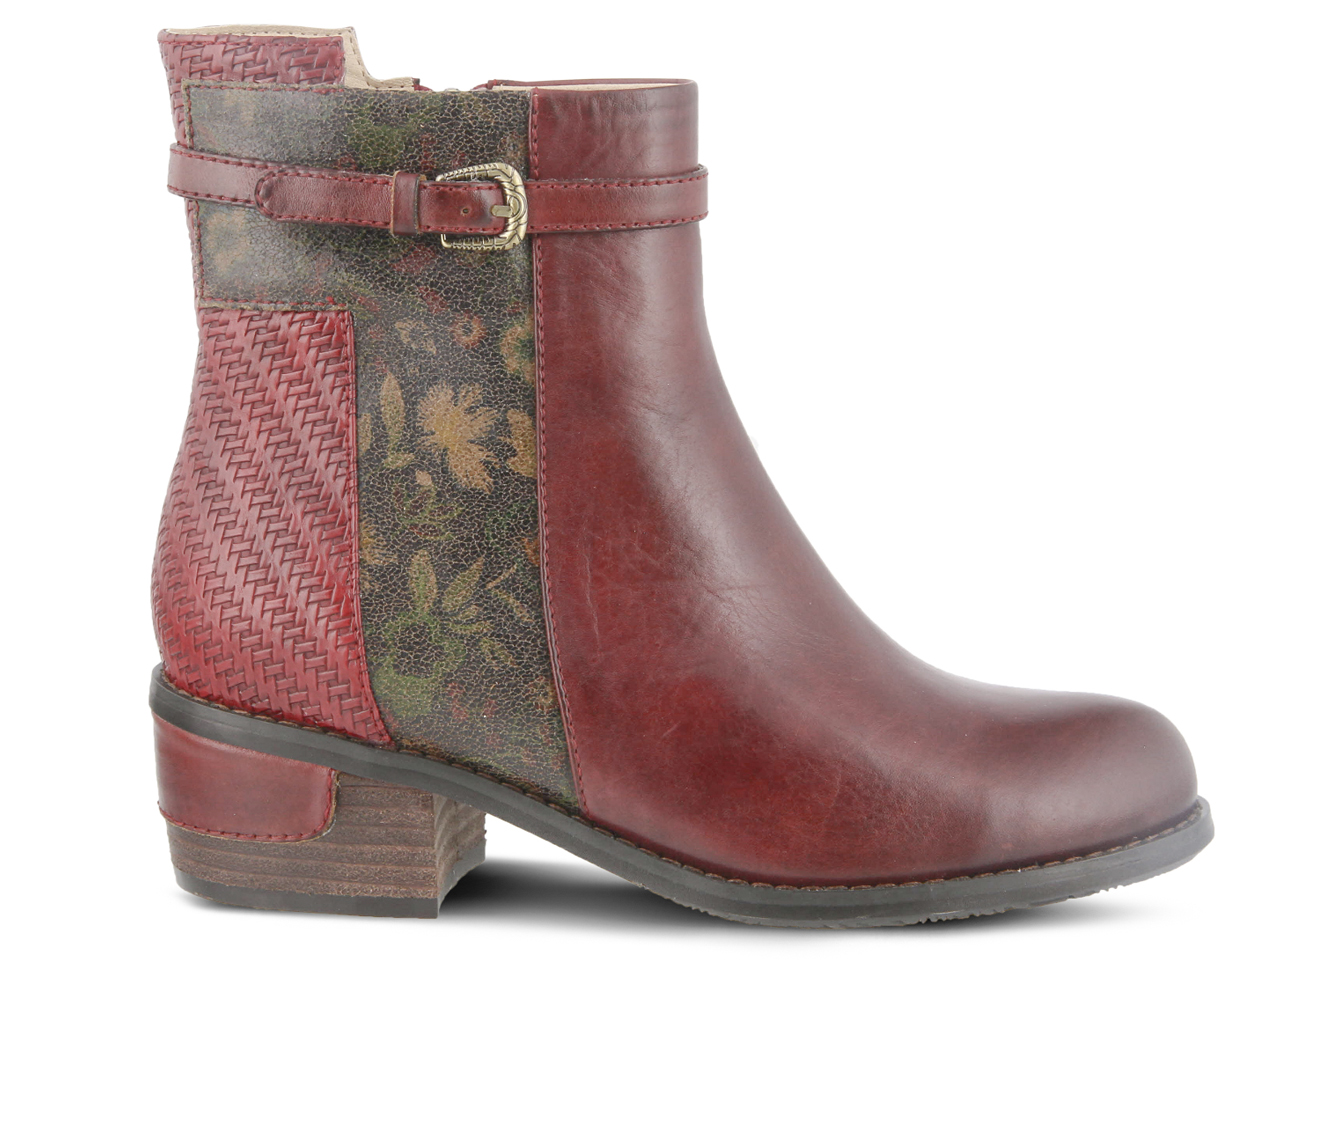 L'Artiste Kanessa Women's Boots (Red Leather)